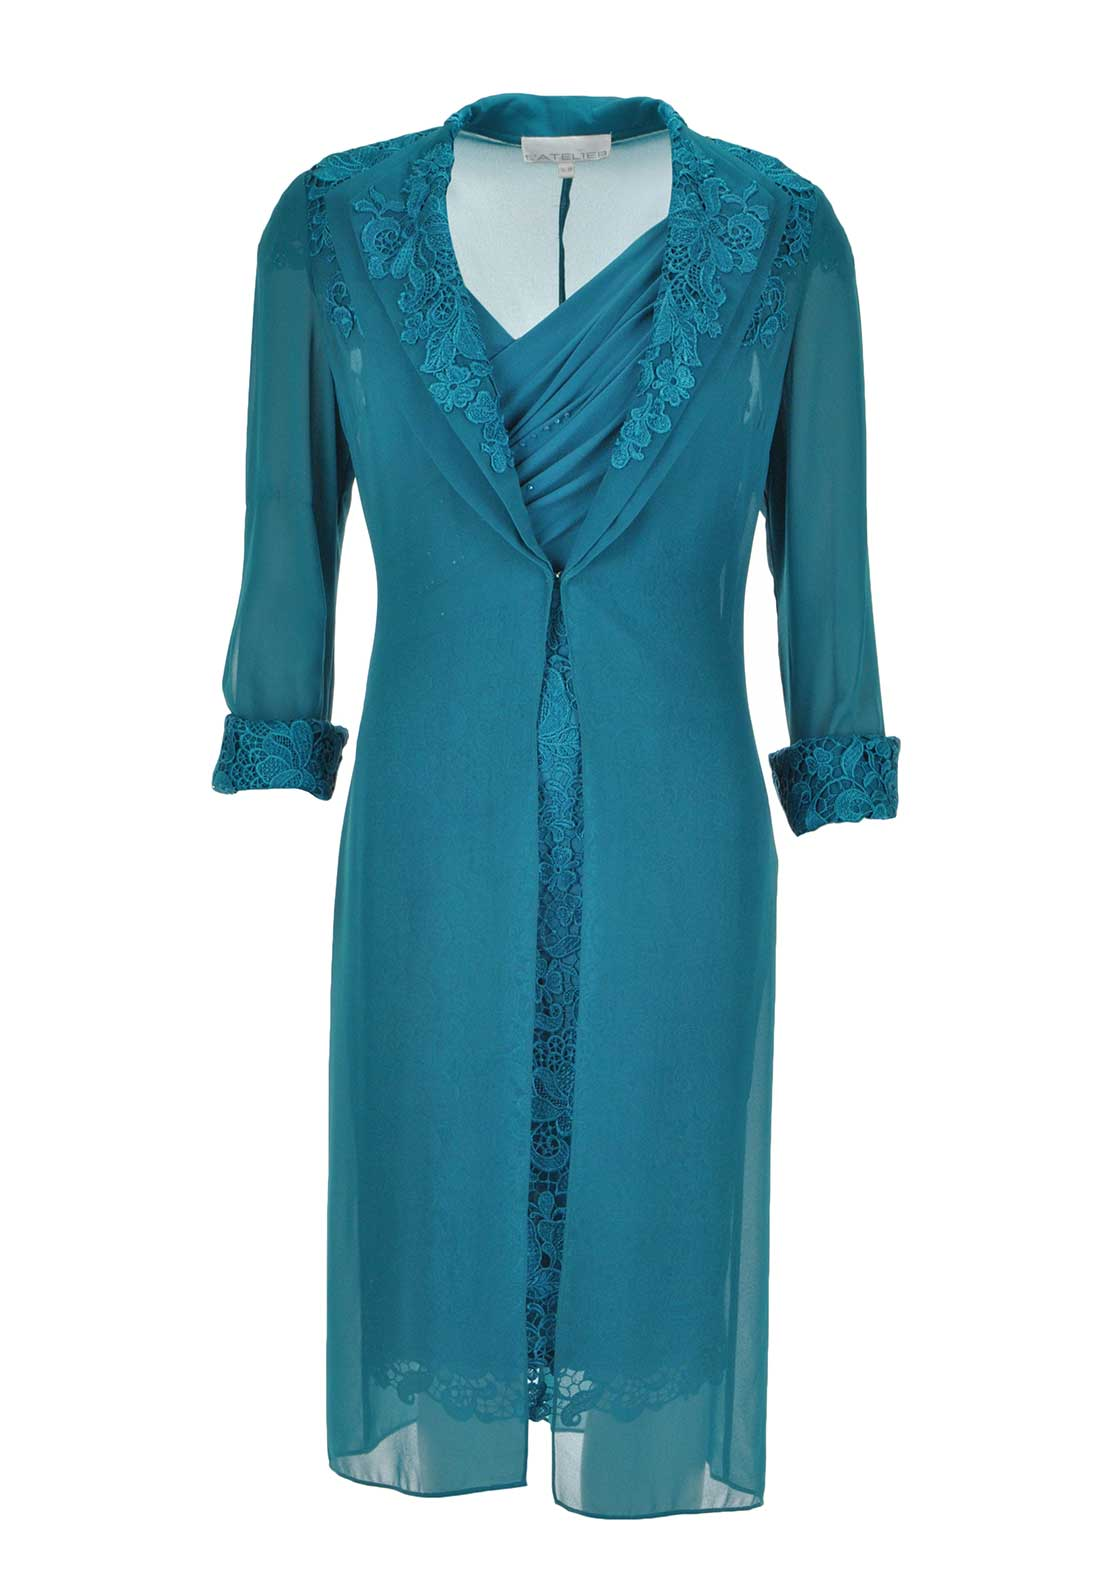 L'Atelier Dress & Chiffon Coat, Teal Green